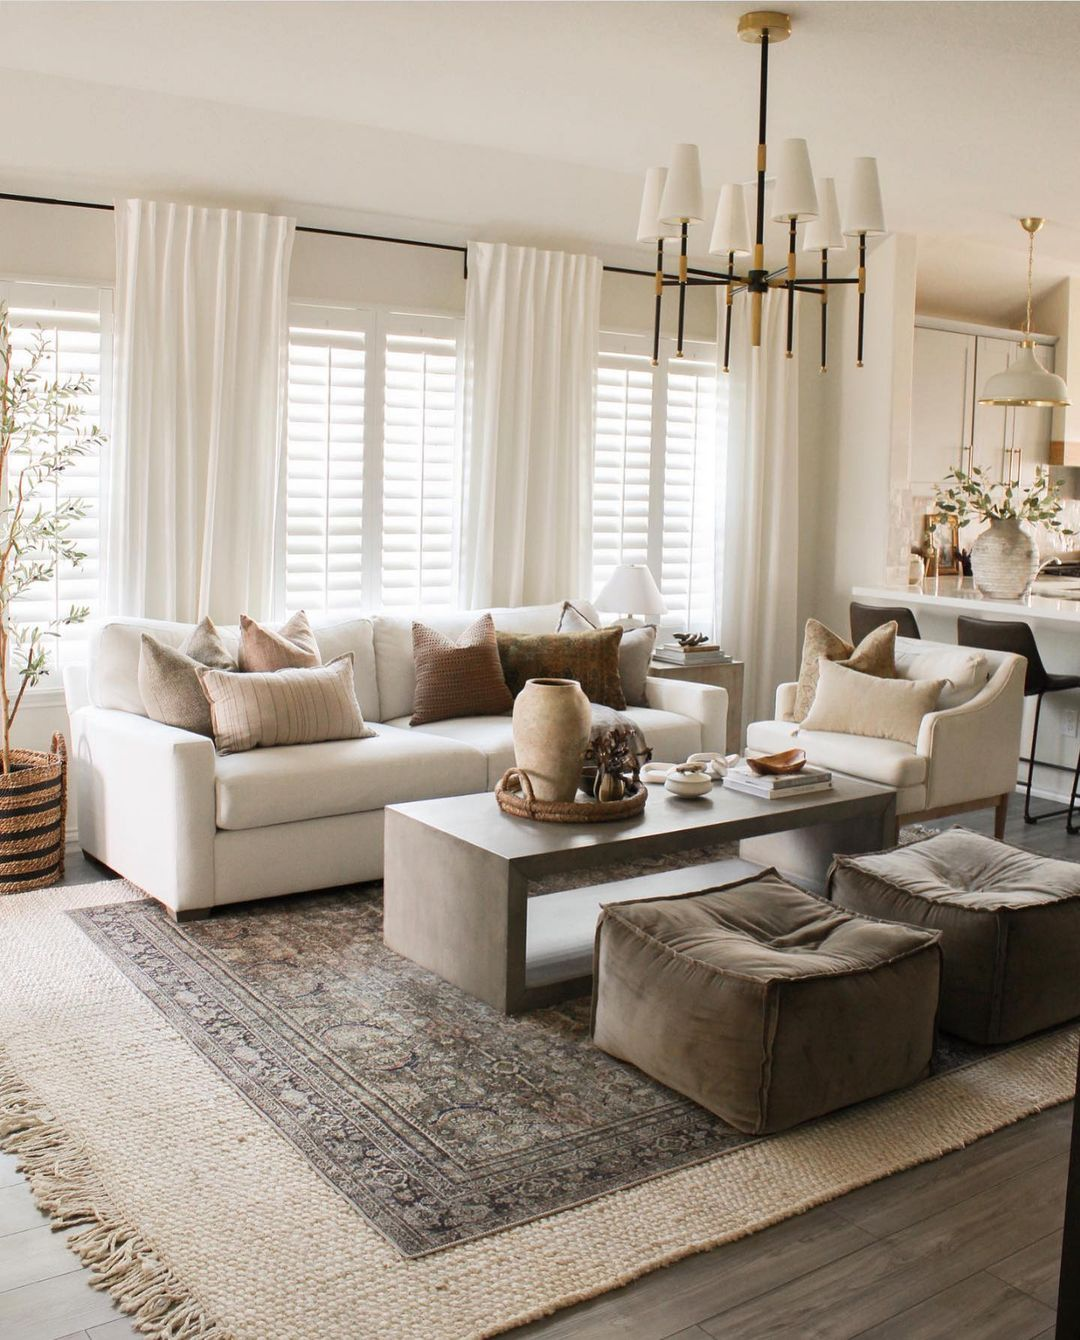 aesthetic two toned decor